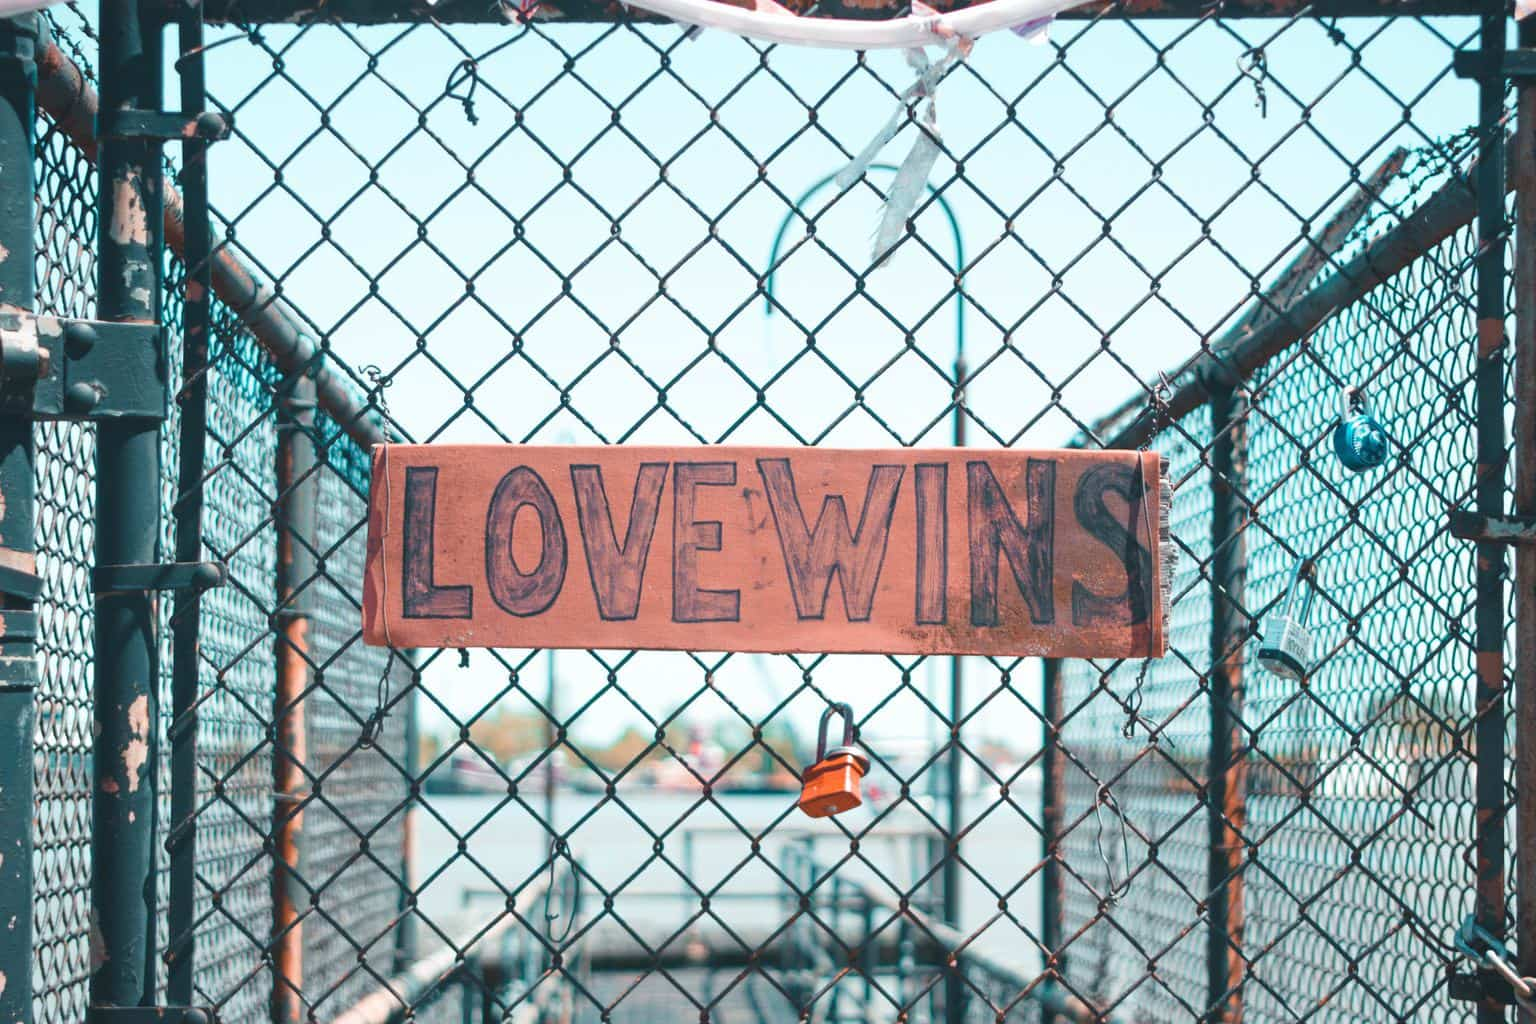 Love wins on a fence